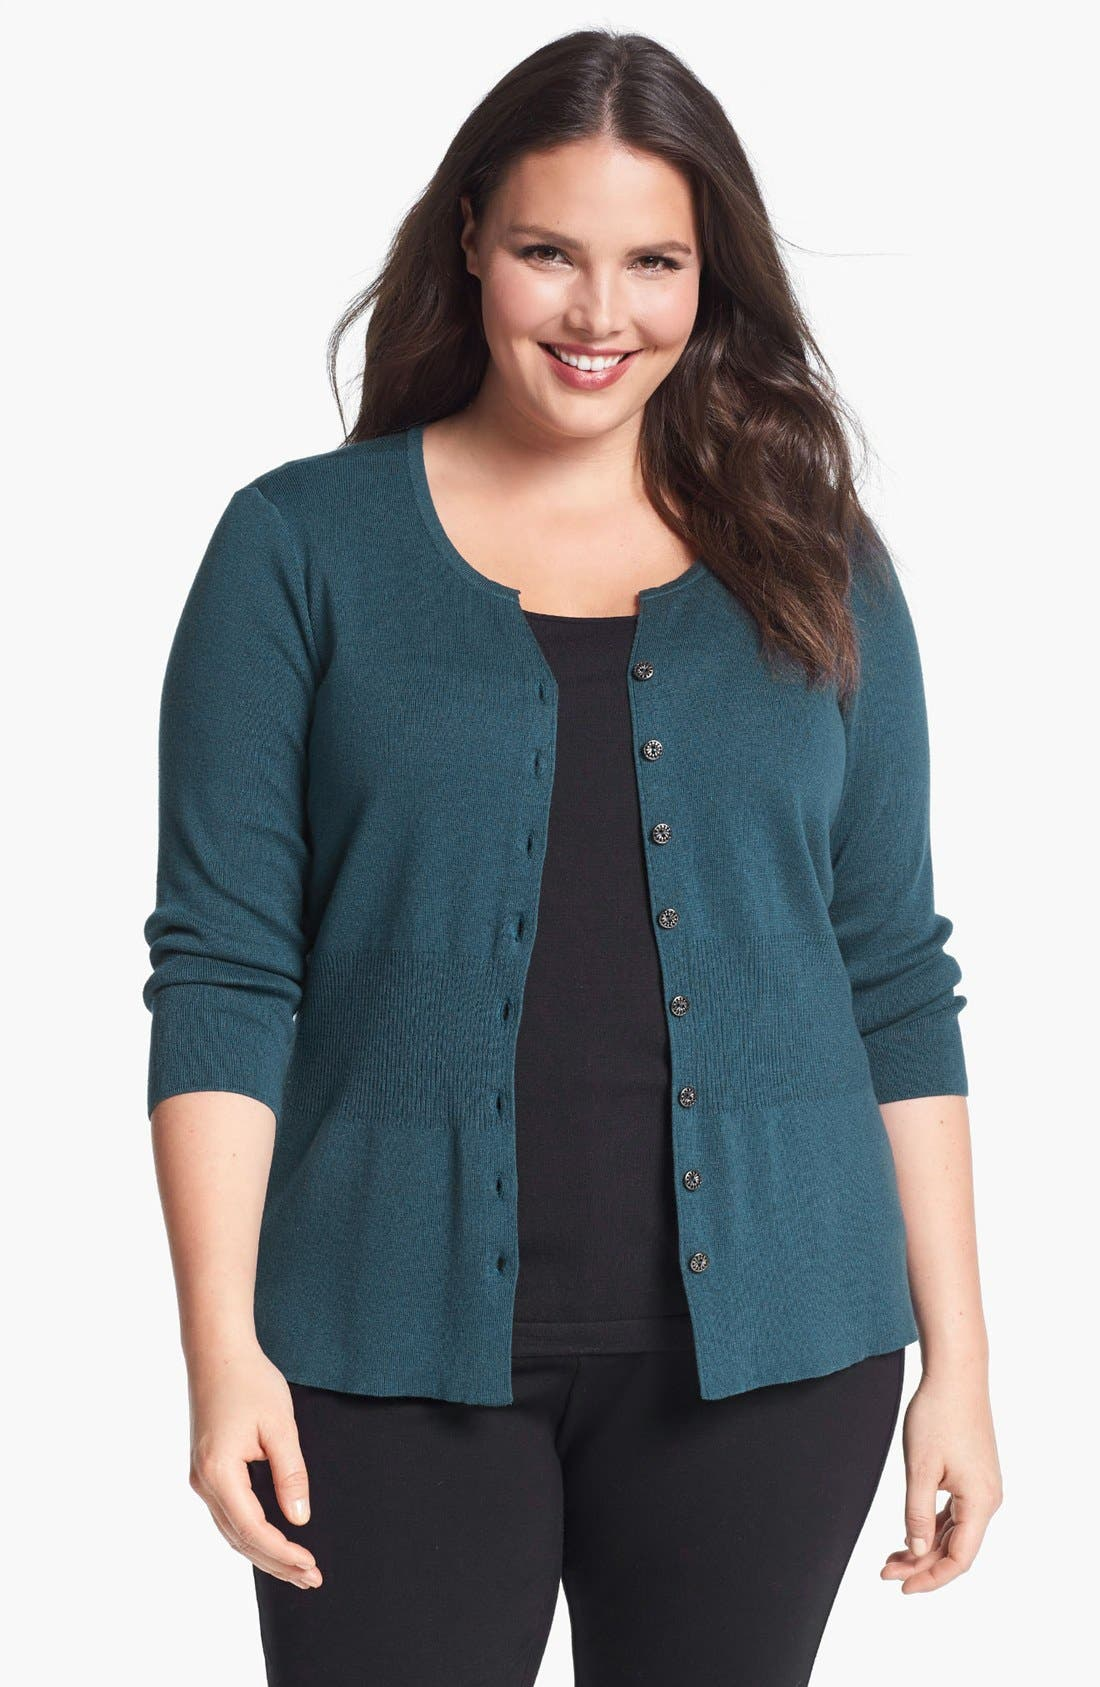 Main Image - NIC + ZOE 'Back of the Chair' Cardigan (Plus Size)